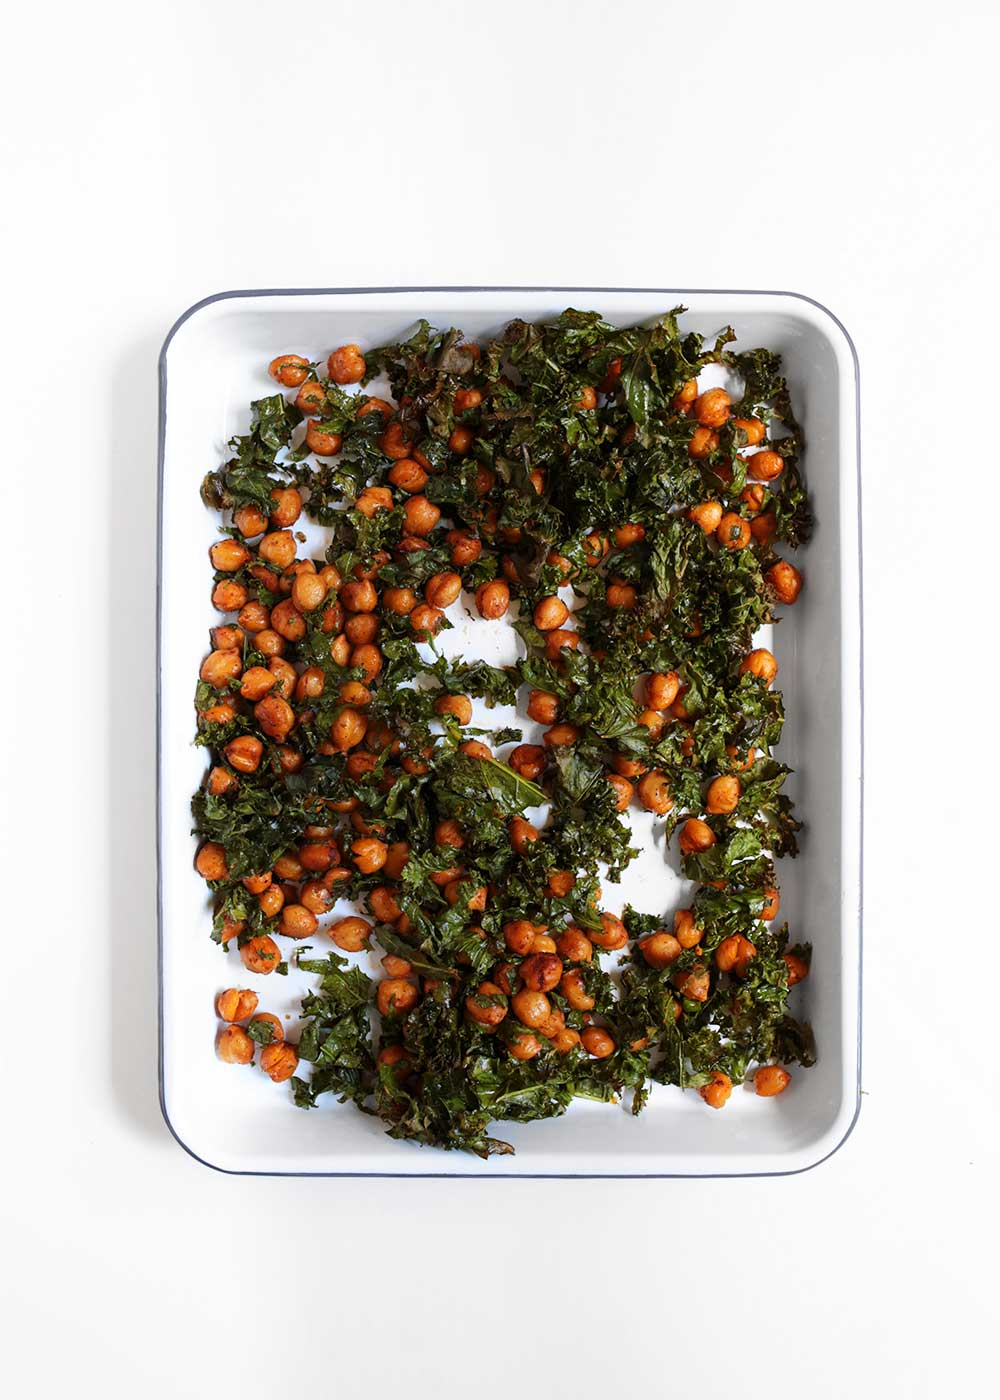 crispy kale and chickpeas on baking sheet